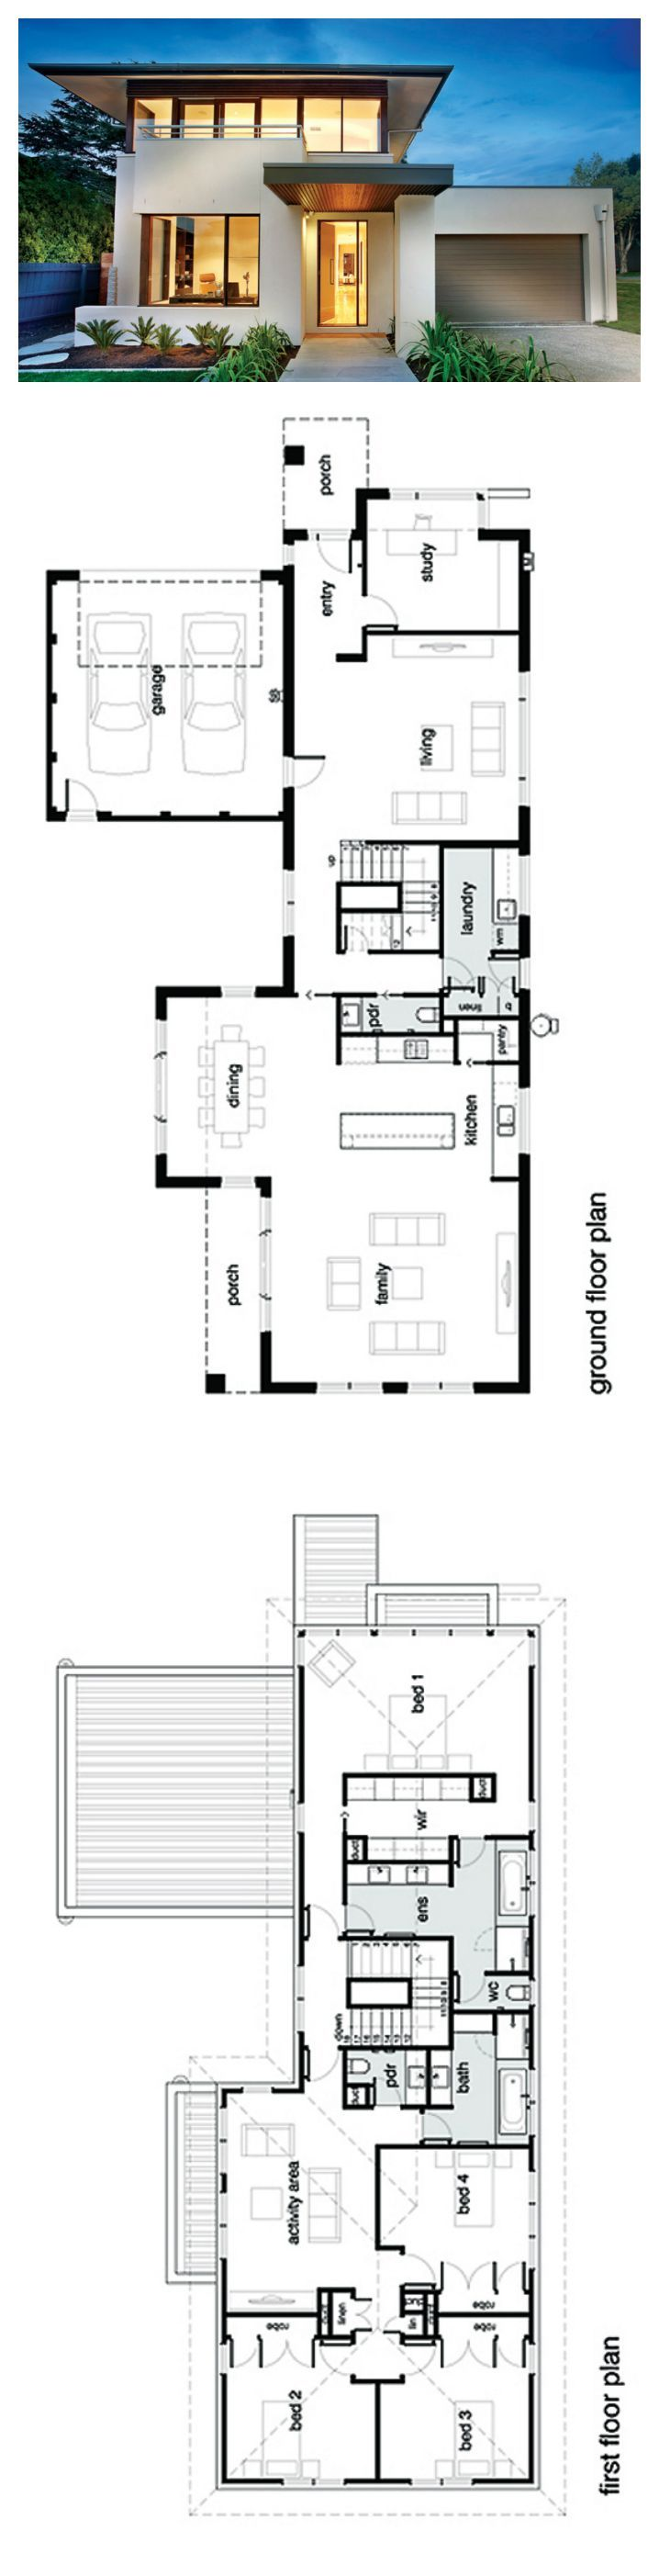 Best 25 modern house plans ideas on pinterest for Single story multi family house plans